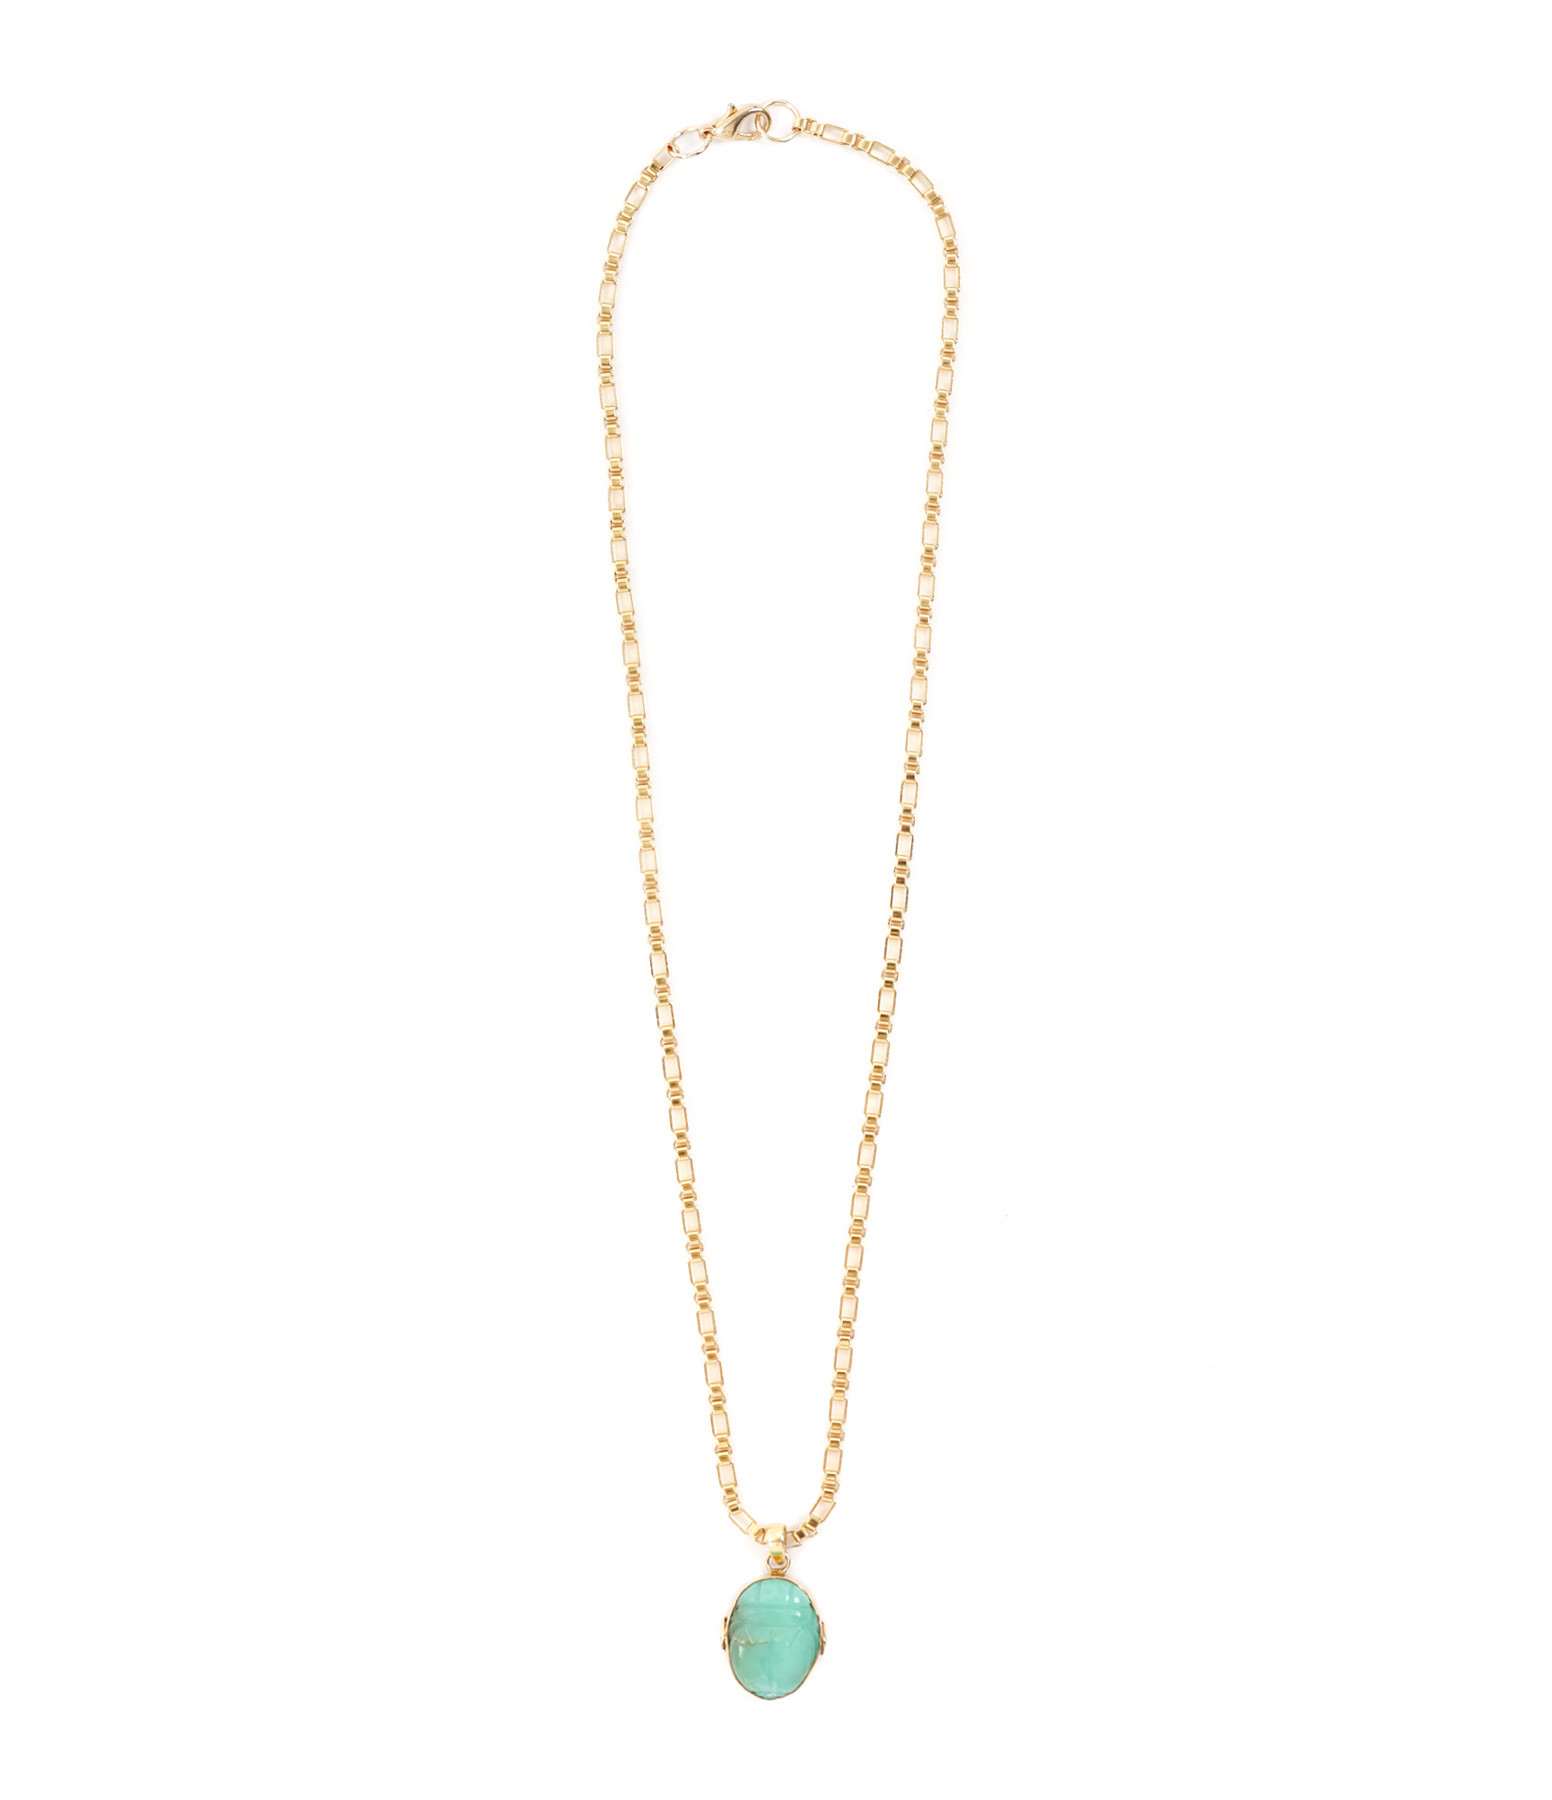 VADI JEWELS - Collier Scarabée Turquoise Plaqué Or